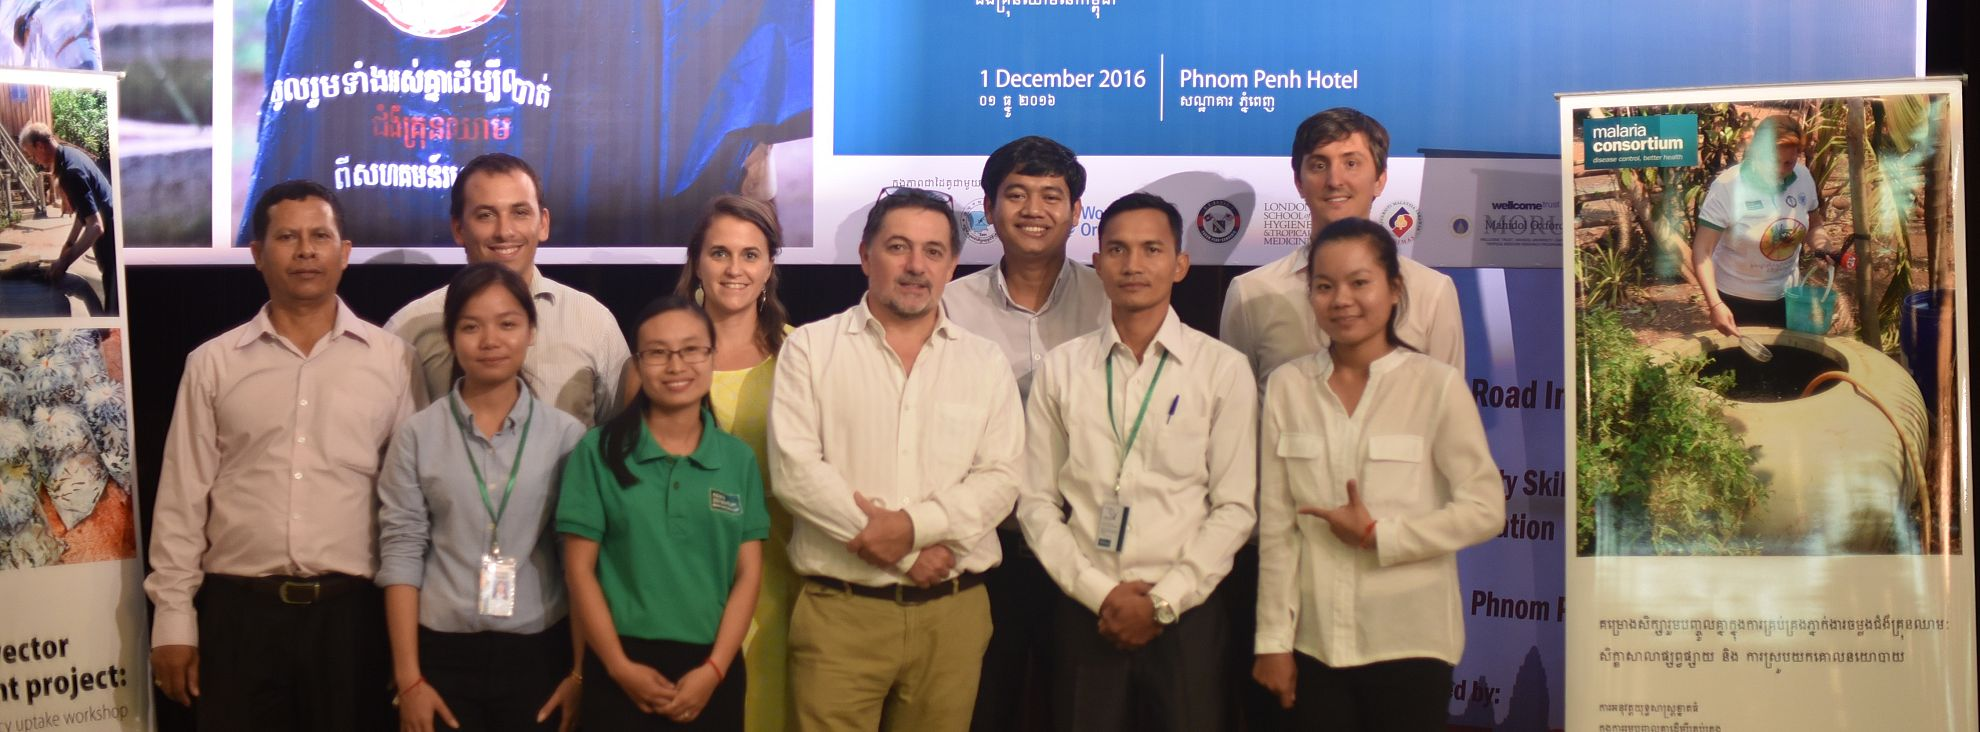 Latest News Malaria consortium receives prize for grassroots solution against dengue in cambodia